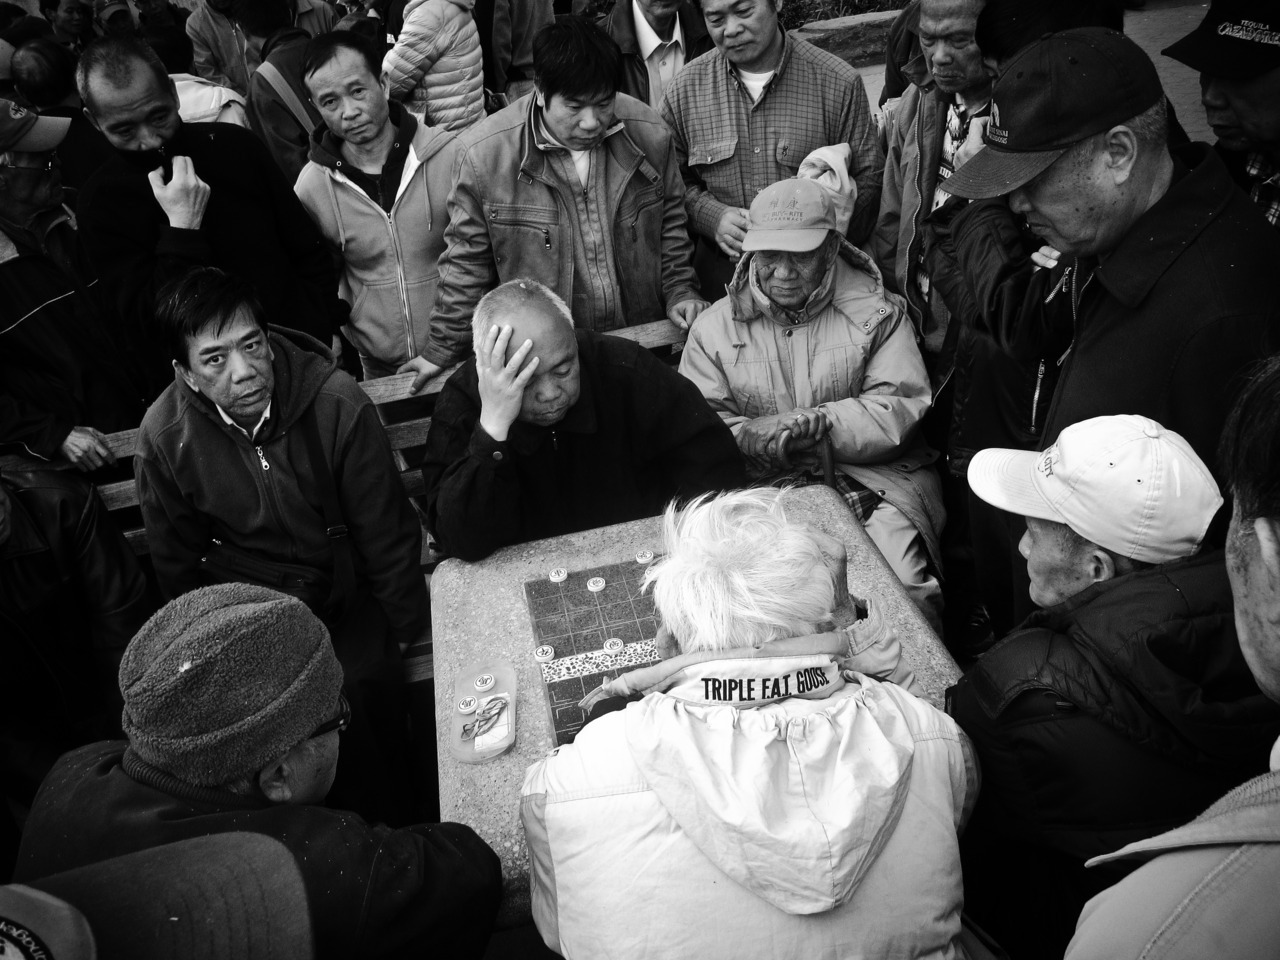 113 - Big Game in Chinatown   #366Project